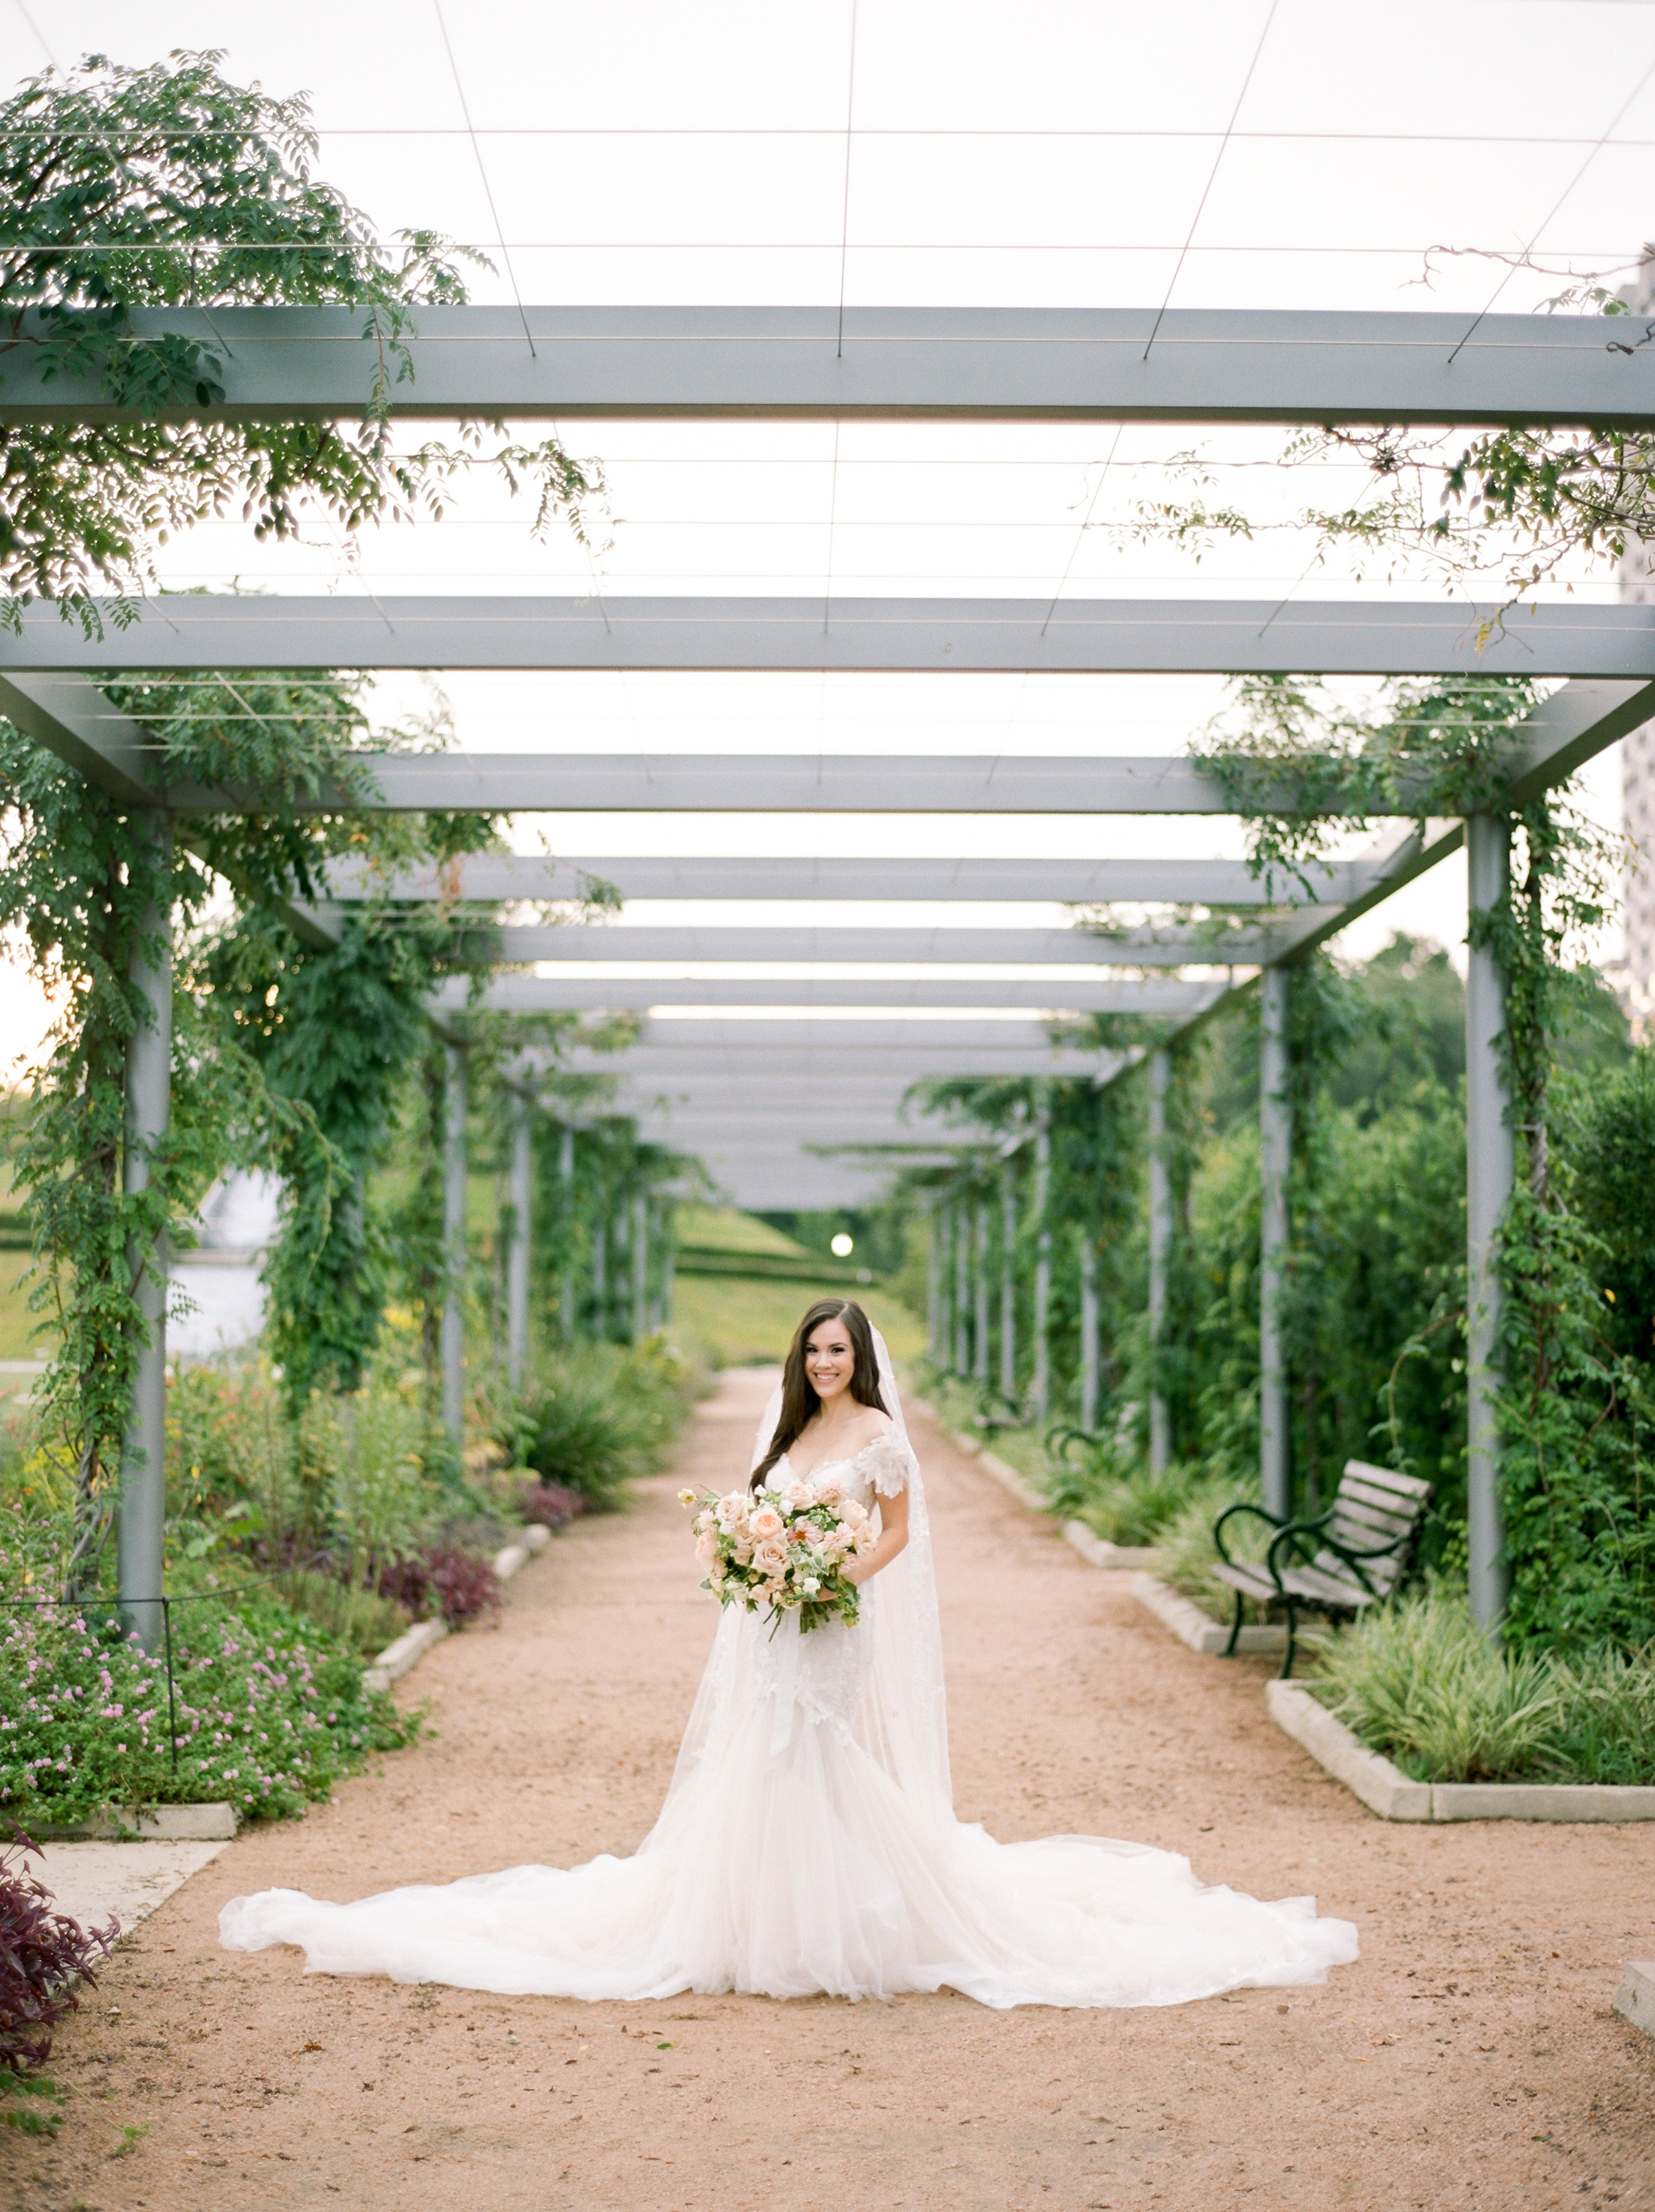 Fine-Art-Film-Houston-Wedding-Photographer-Best-Top-Luxury-Texas-Austin-Dallas-Destination-Dana-Fernandez-Photography-Portrait-Bridals-McGovern-Centennial-Gardens-1.jpg